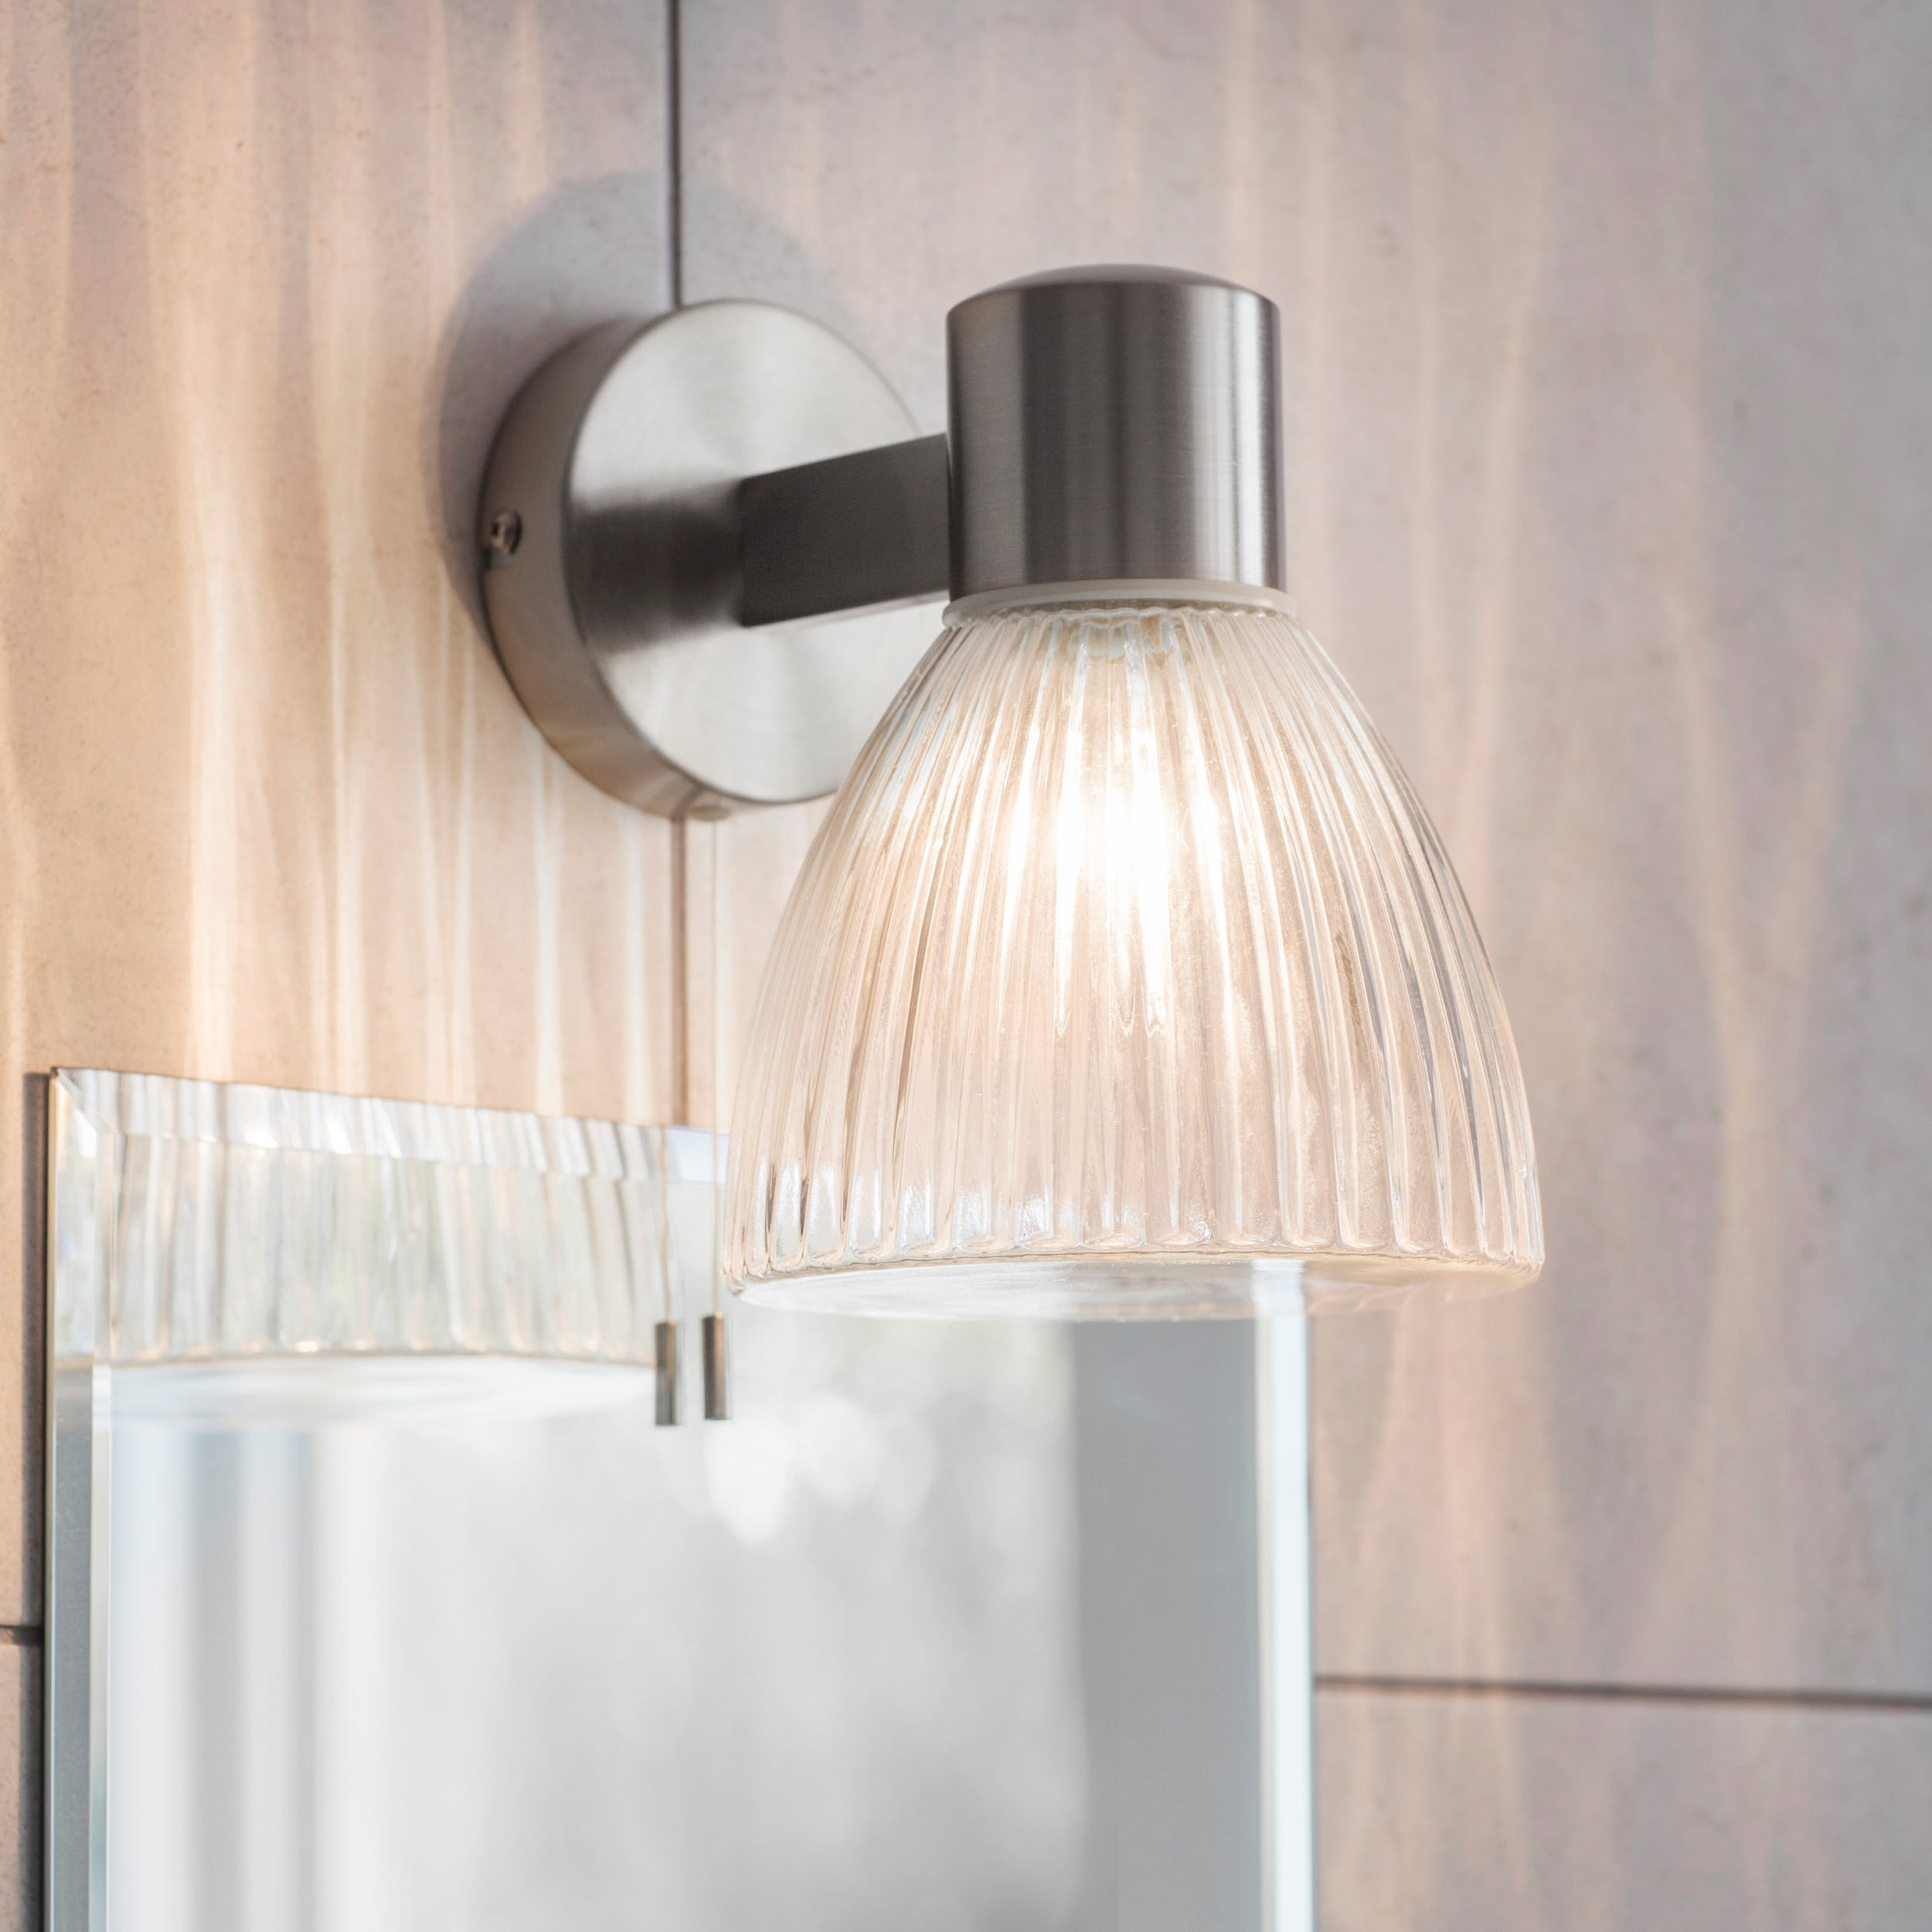 Gl Campden Bathroom Wall Light In